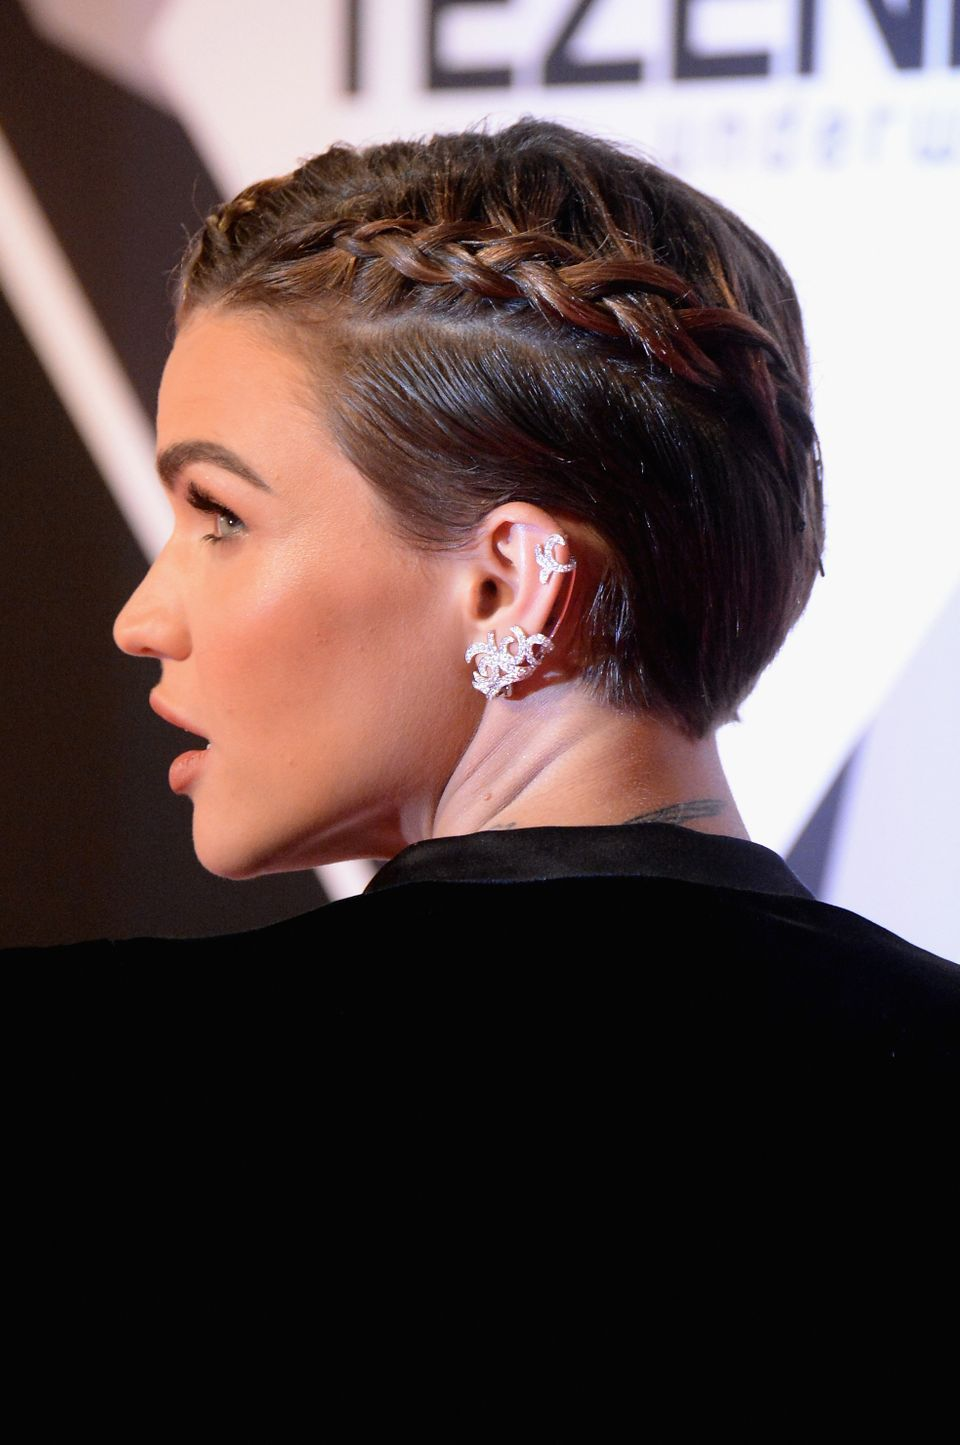 This braided hairstyle is a look you can do on freshly washed hair or after misting with a leave-in conditioner. Watch this <